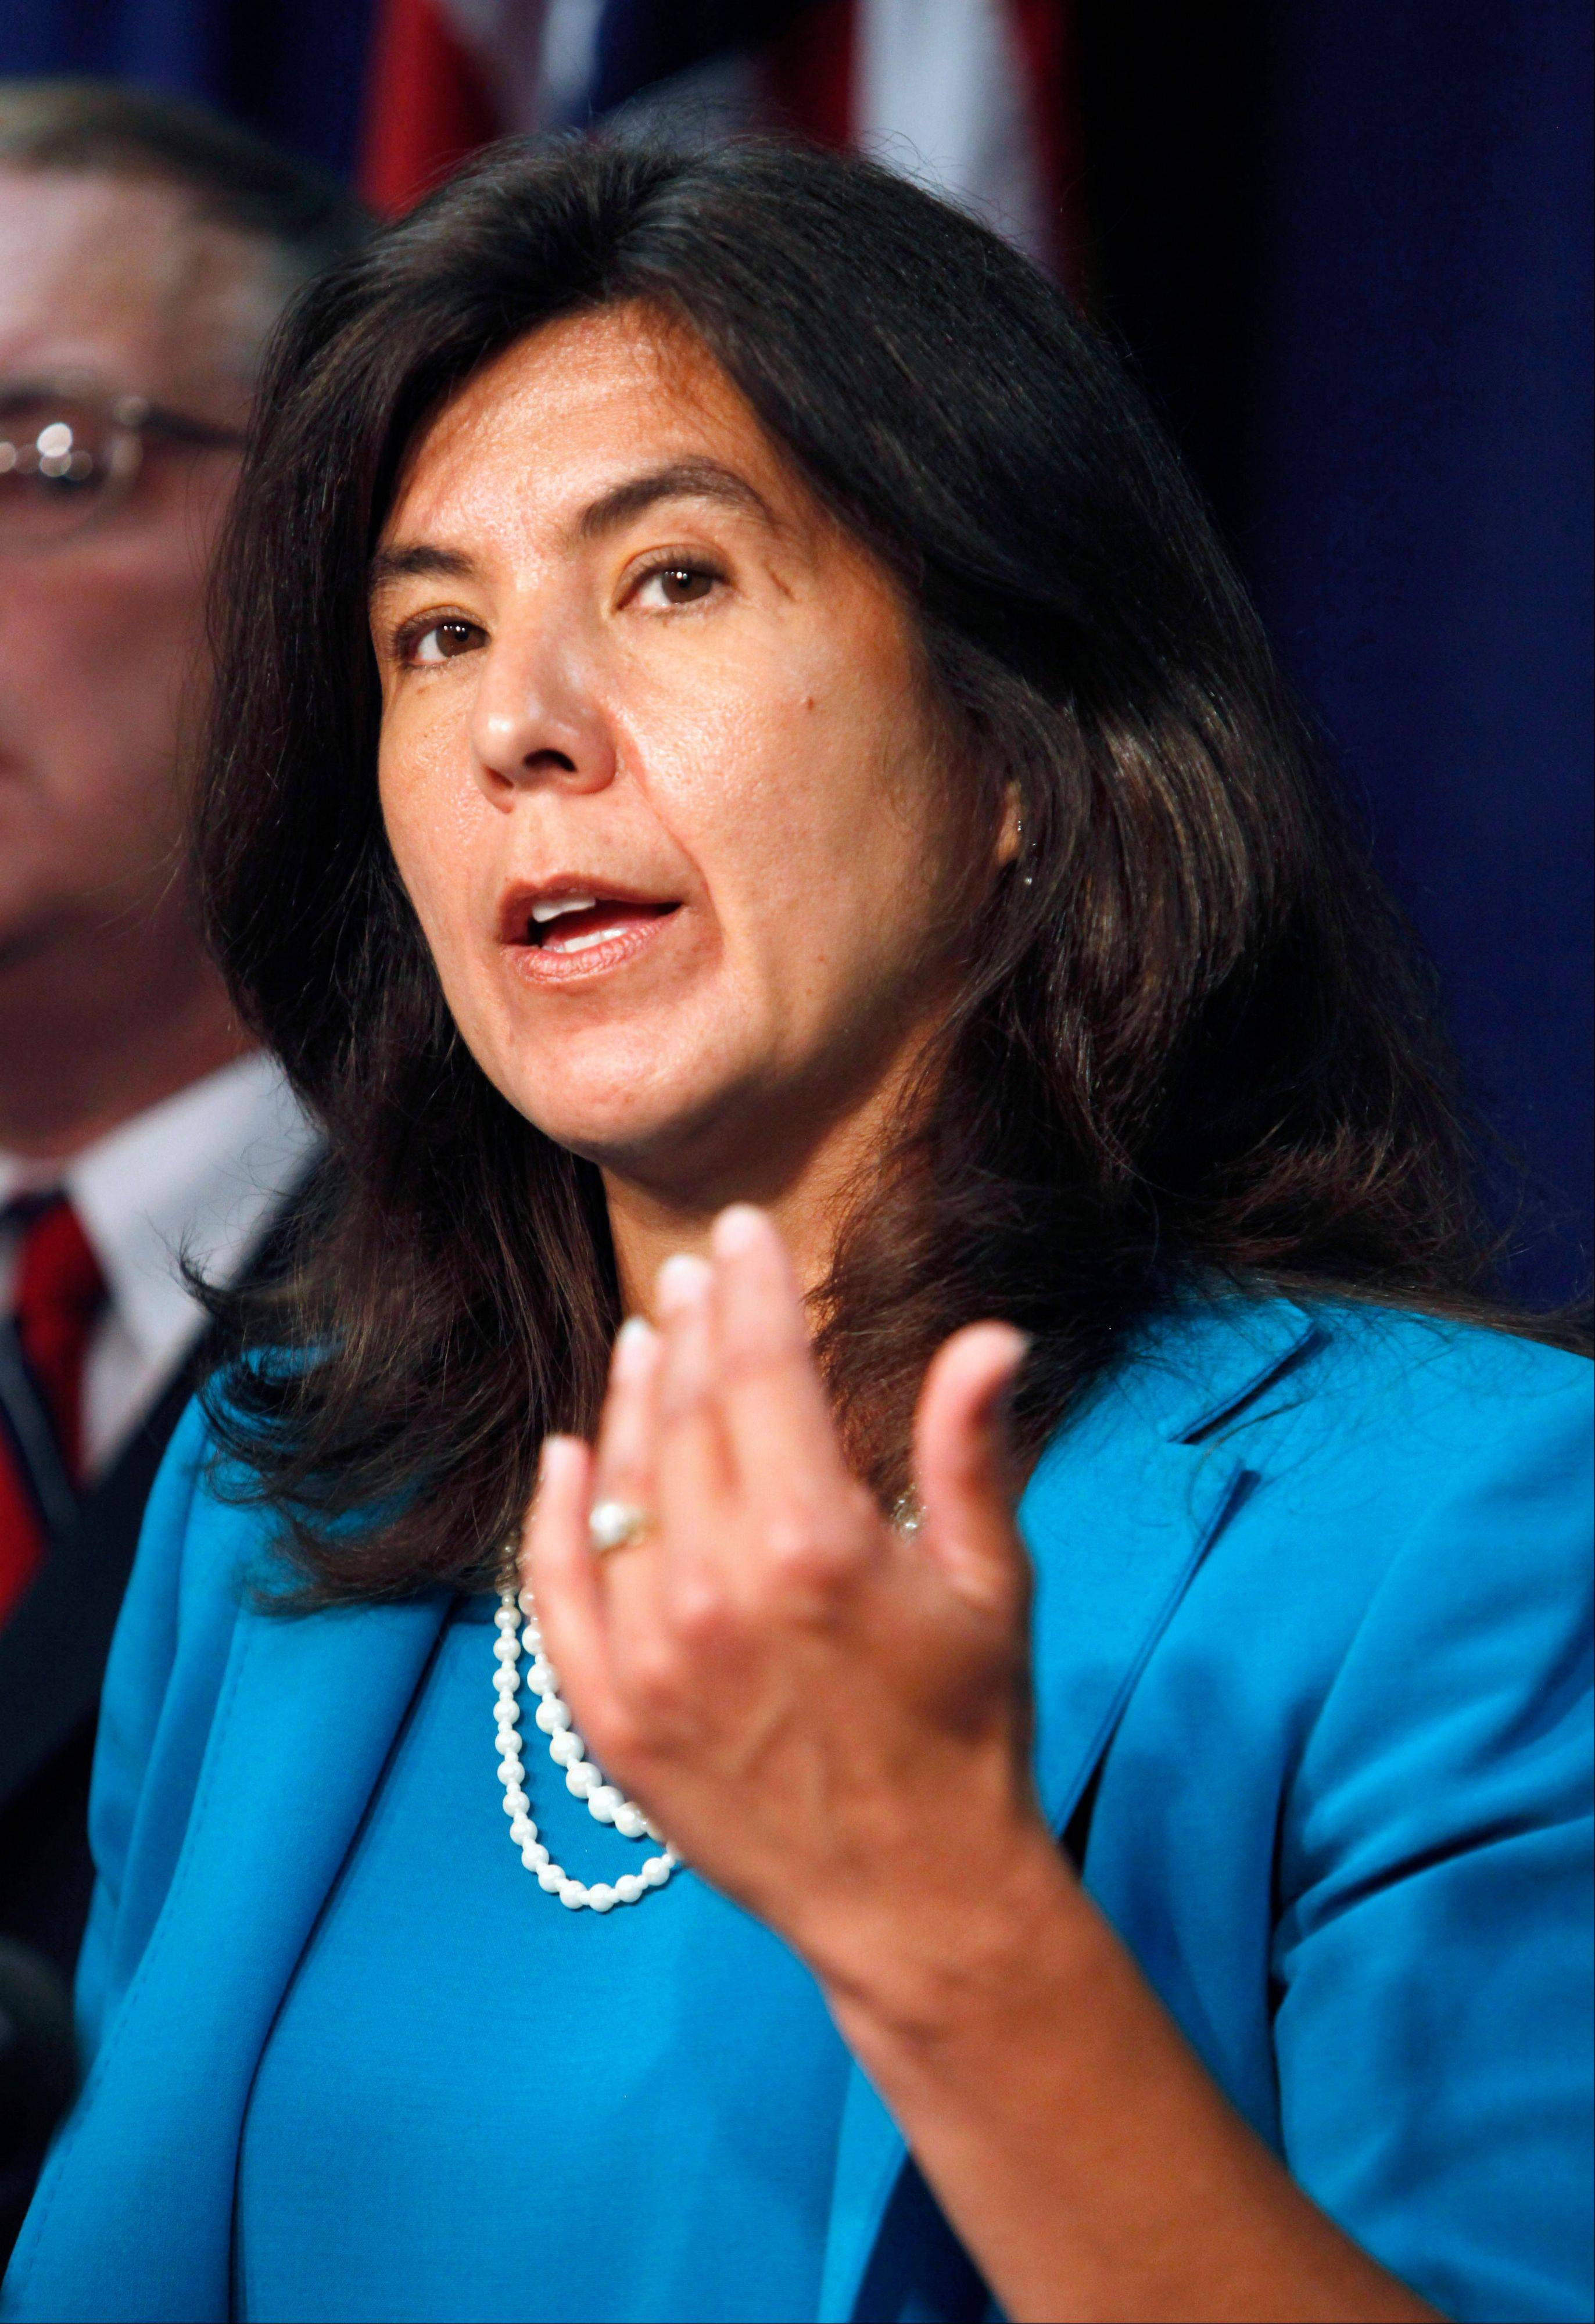 The U.S. Supreme Court on Monday rejected an appeal by Cook County State's Attorney Anita Alvarez to allow enforcement of a law aimed at stopping people from recording police officers on the job.